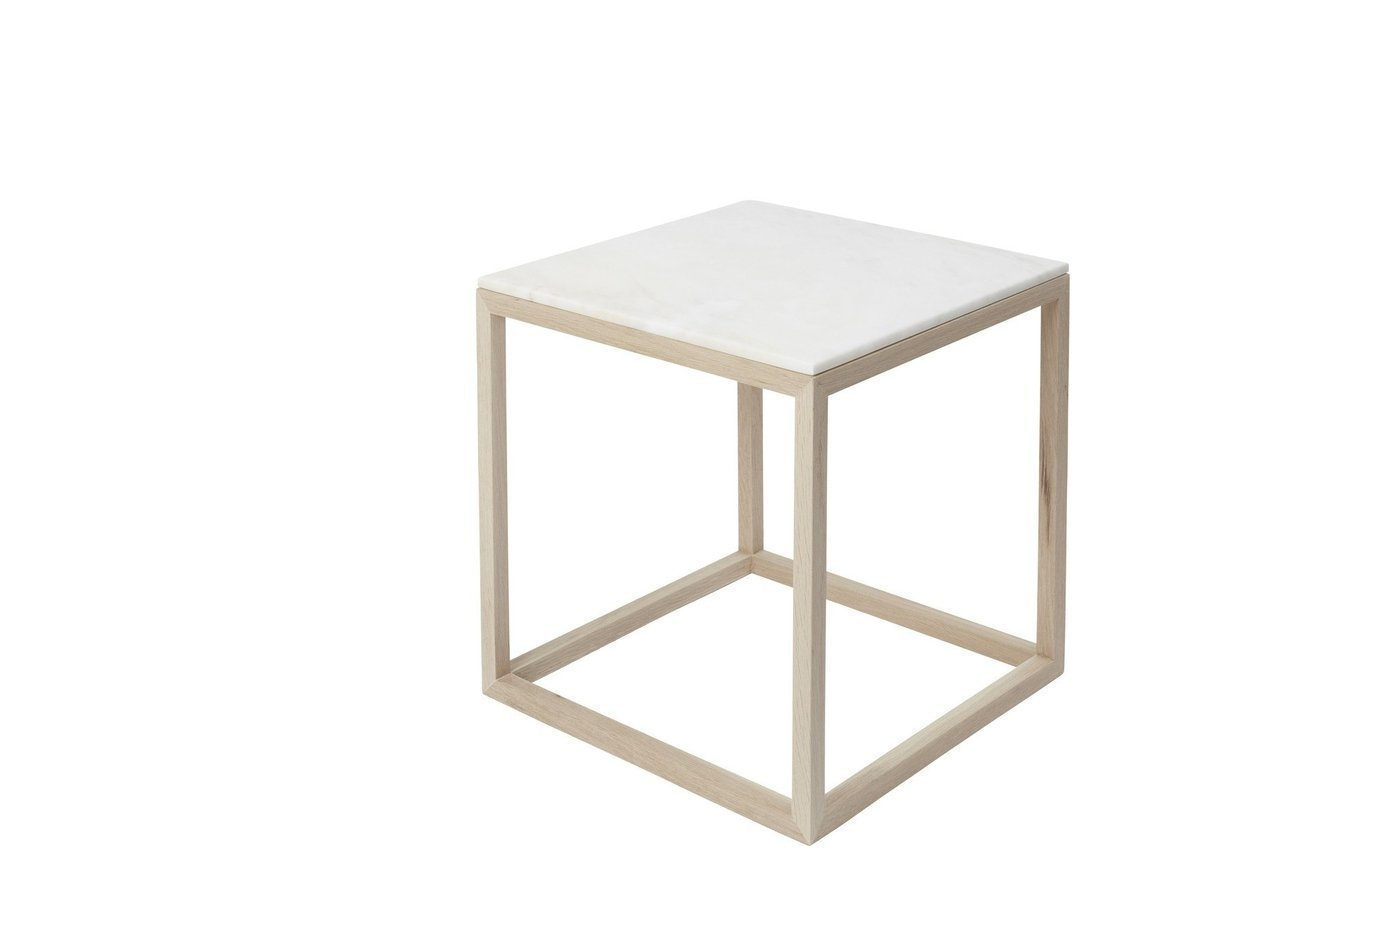 Small Cube Coffee Table.Kristina Dam Small Marble Cube Table